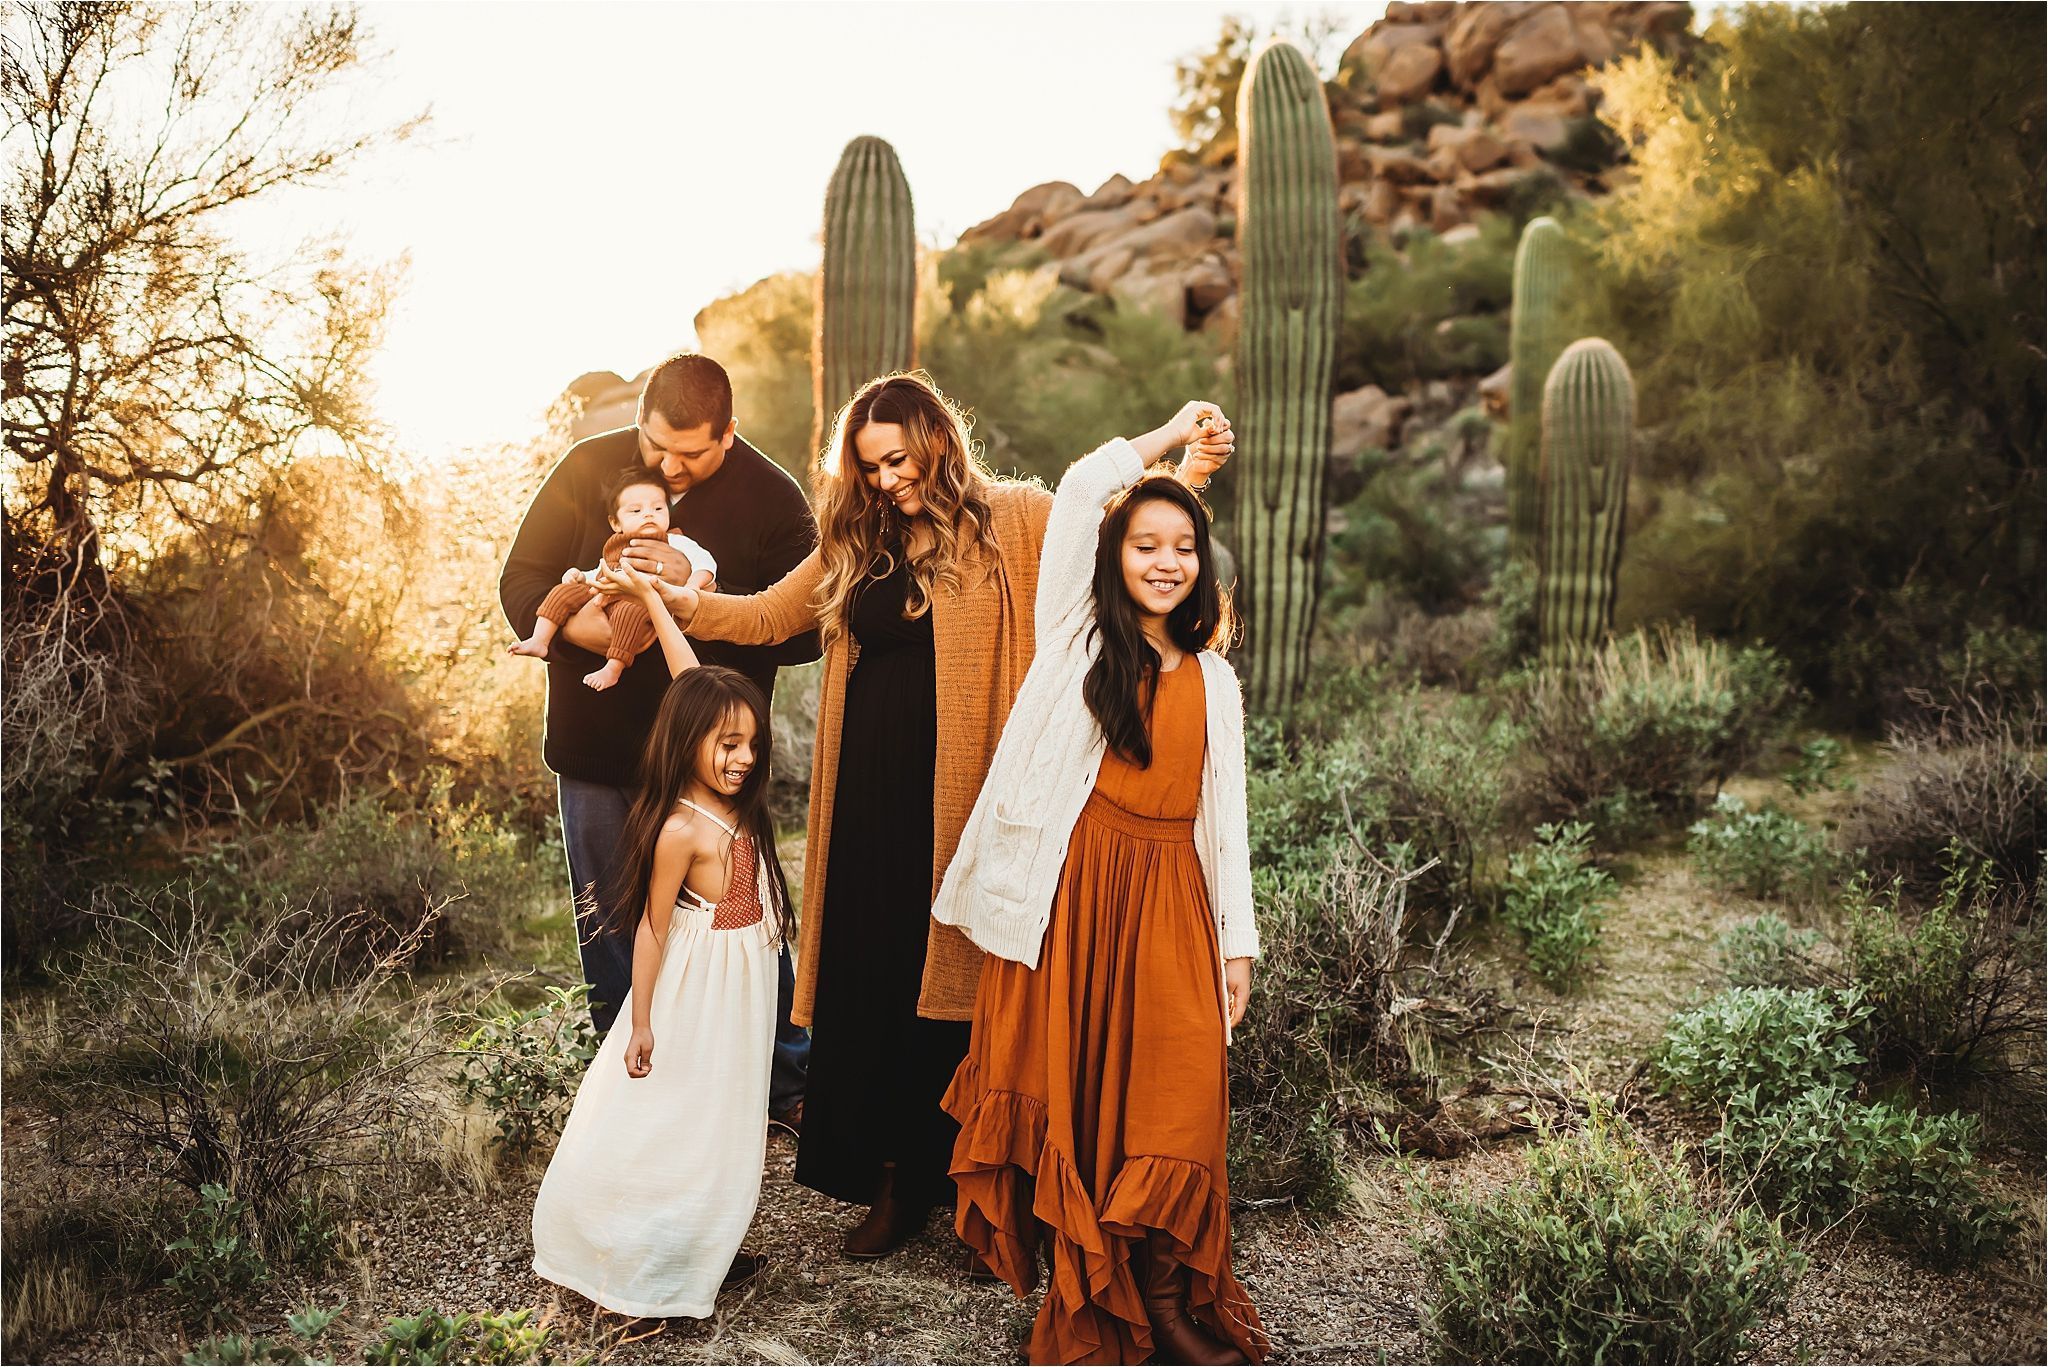 sunset-family-session-Sierra-Vista-Family-Photographer-in-Tucson_1657.jpg